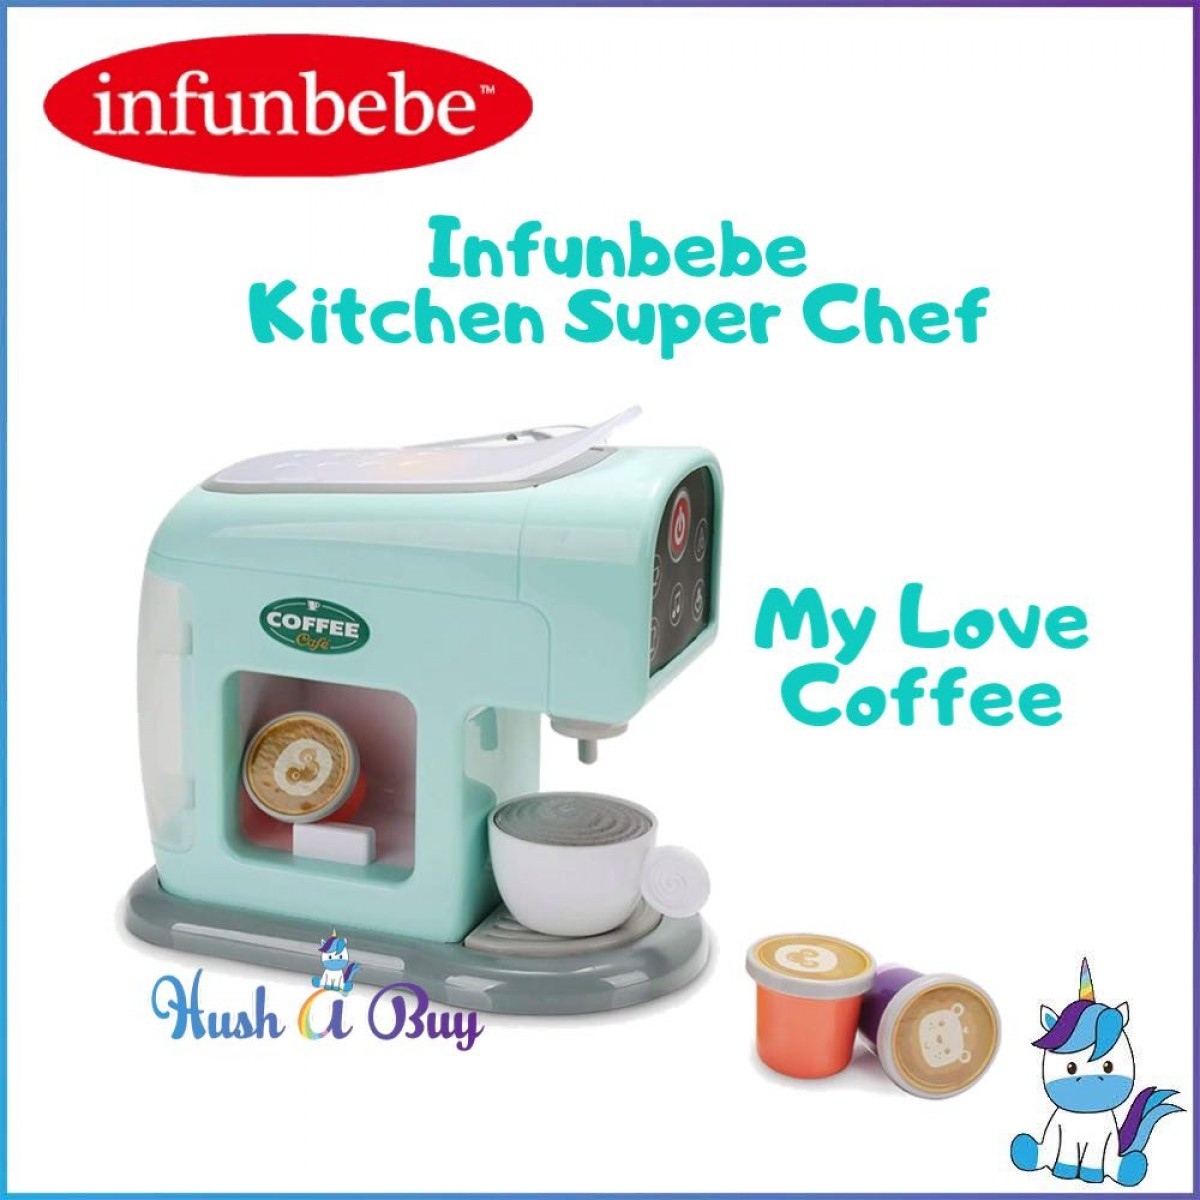 Infunbebe Kitchen Super Chef - My Love Coffee